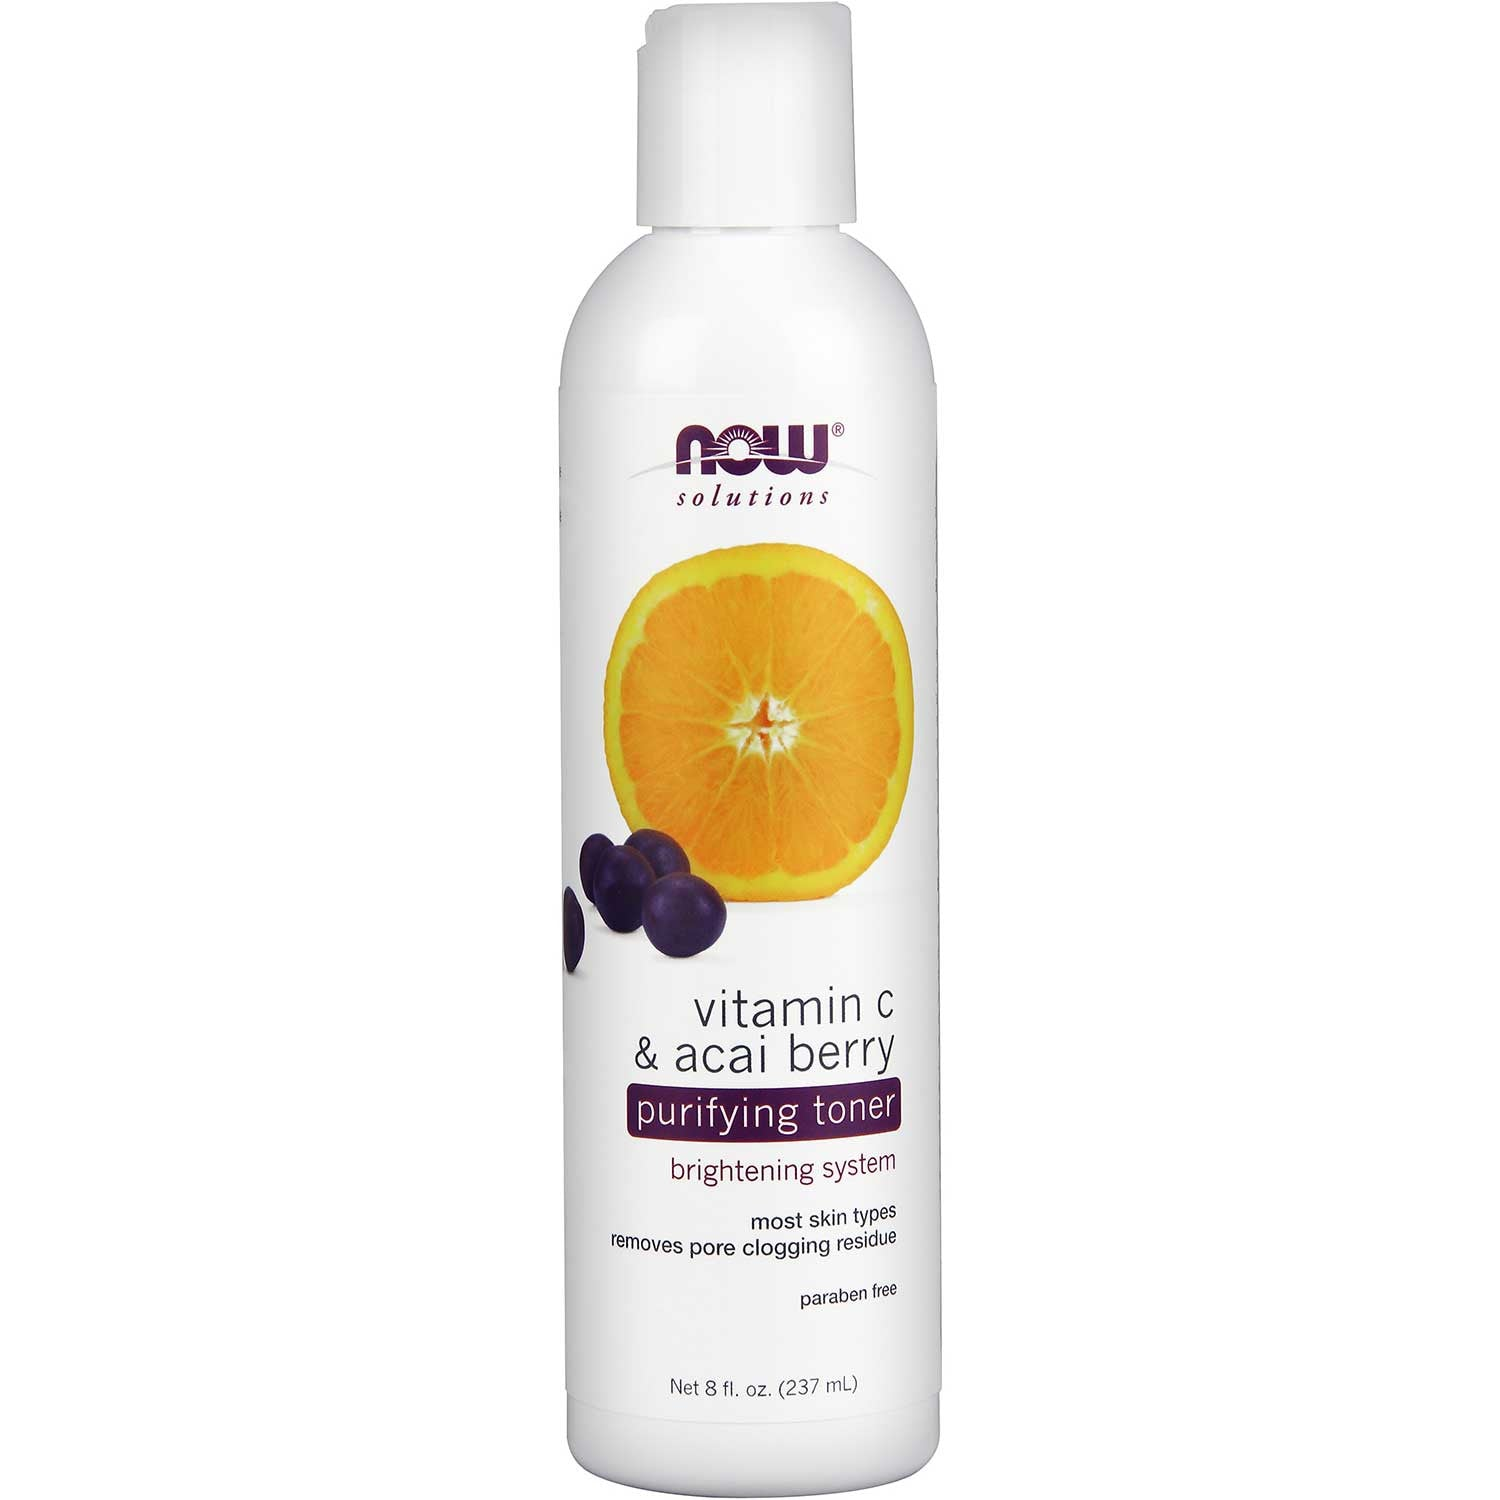 NOW Solutions Vitamin C & Acai Berry Purifying Toner, 237 ml.-NaturesWisdom